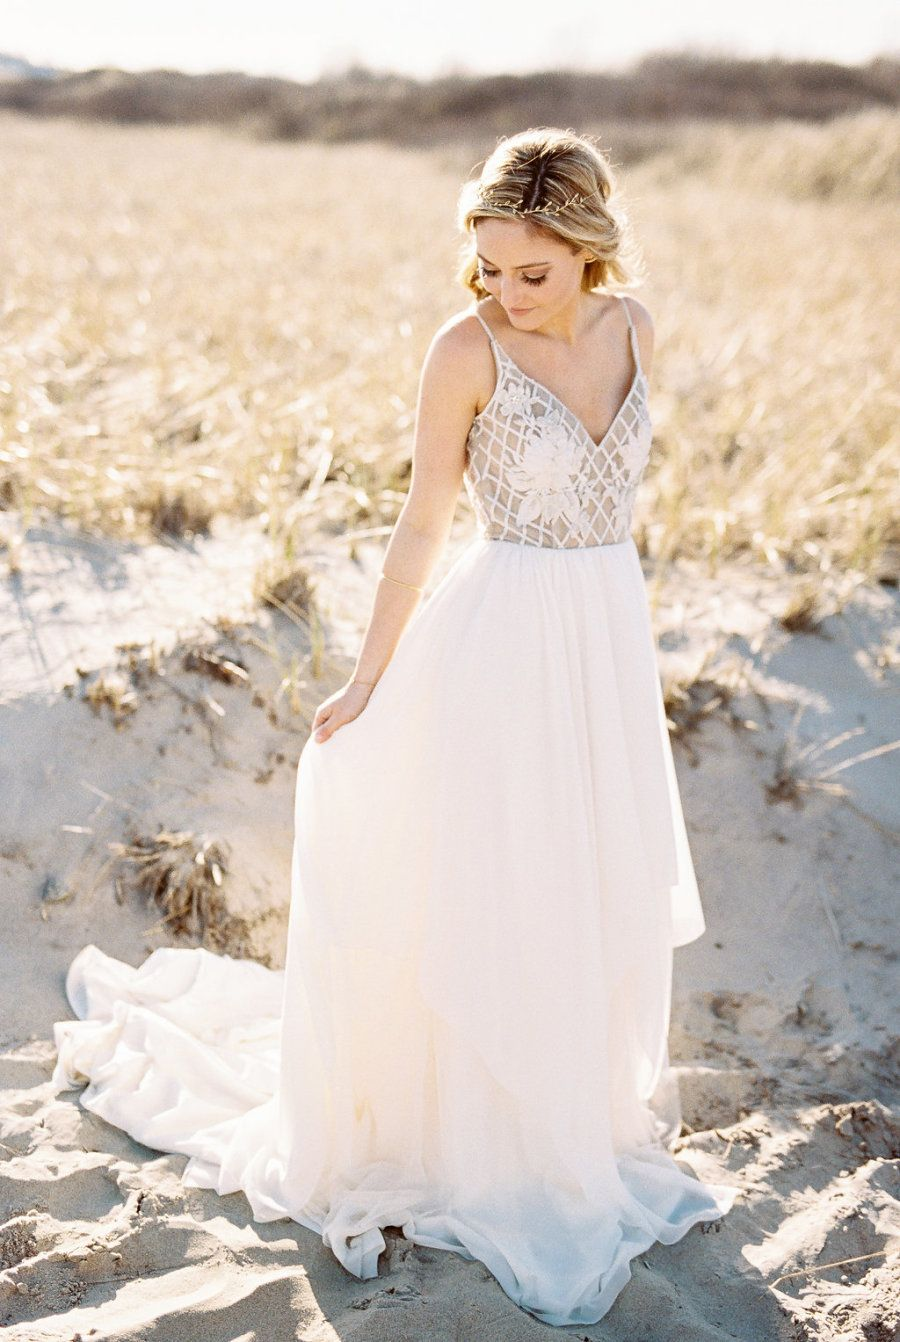 A boho inspiration session fit for a grecian goddess bride